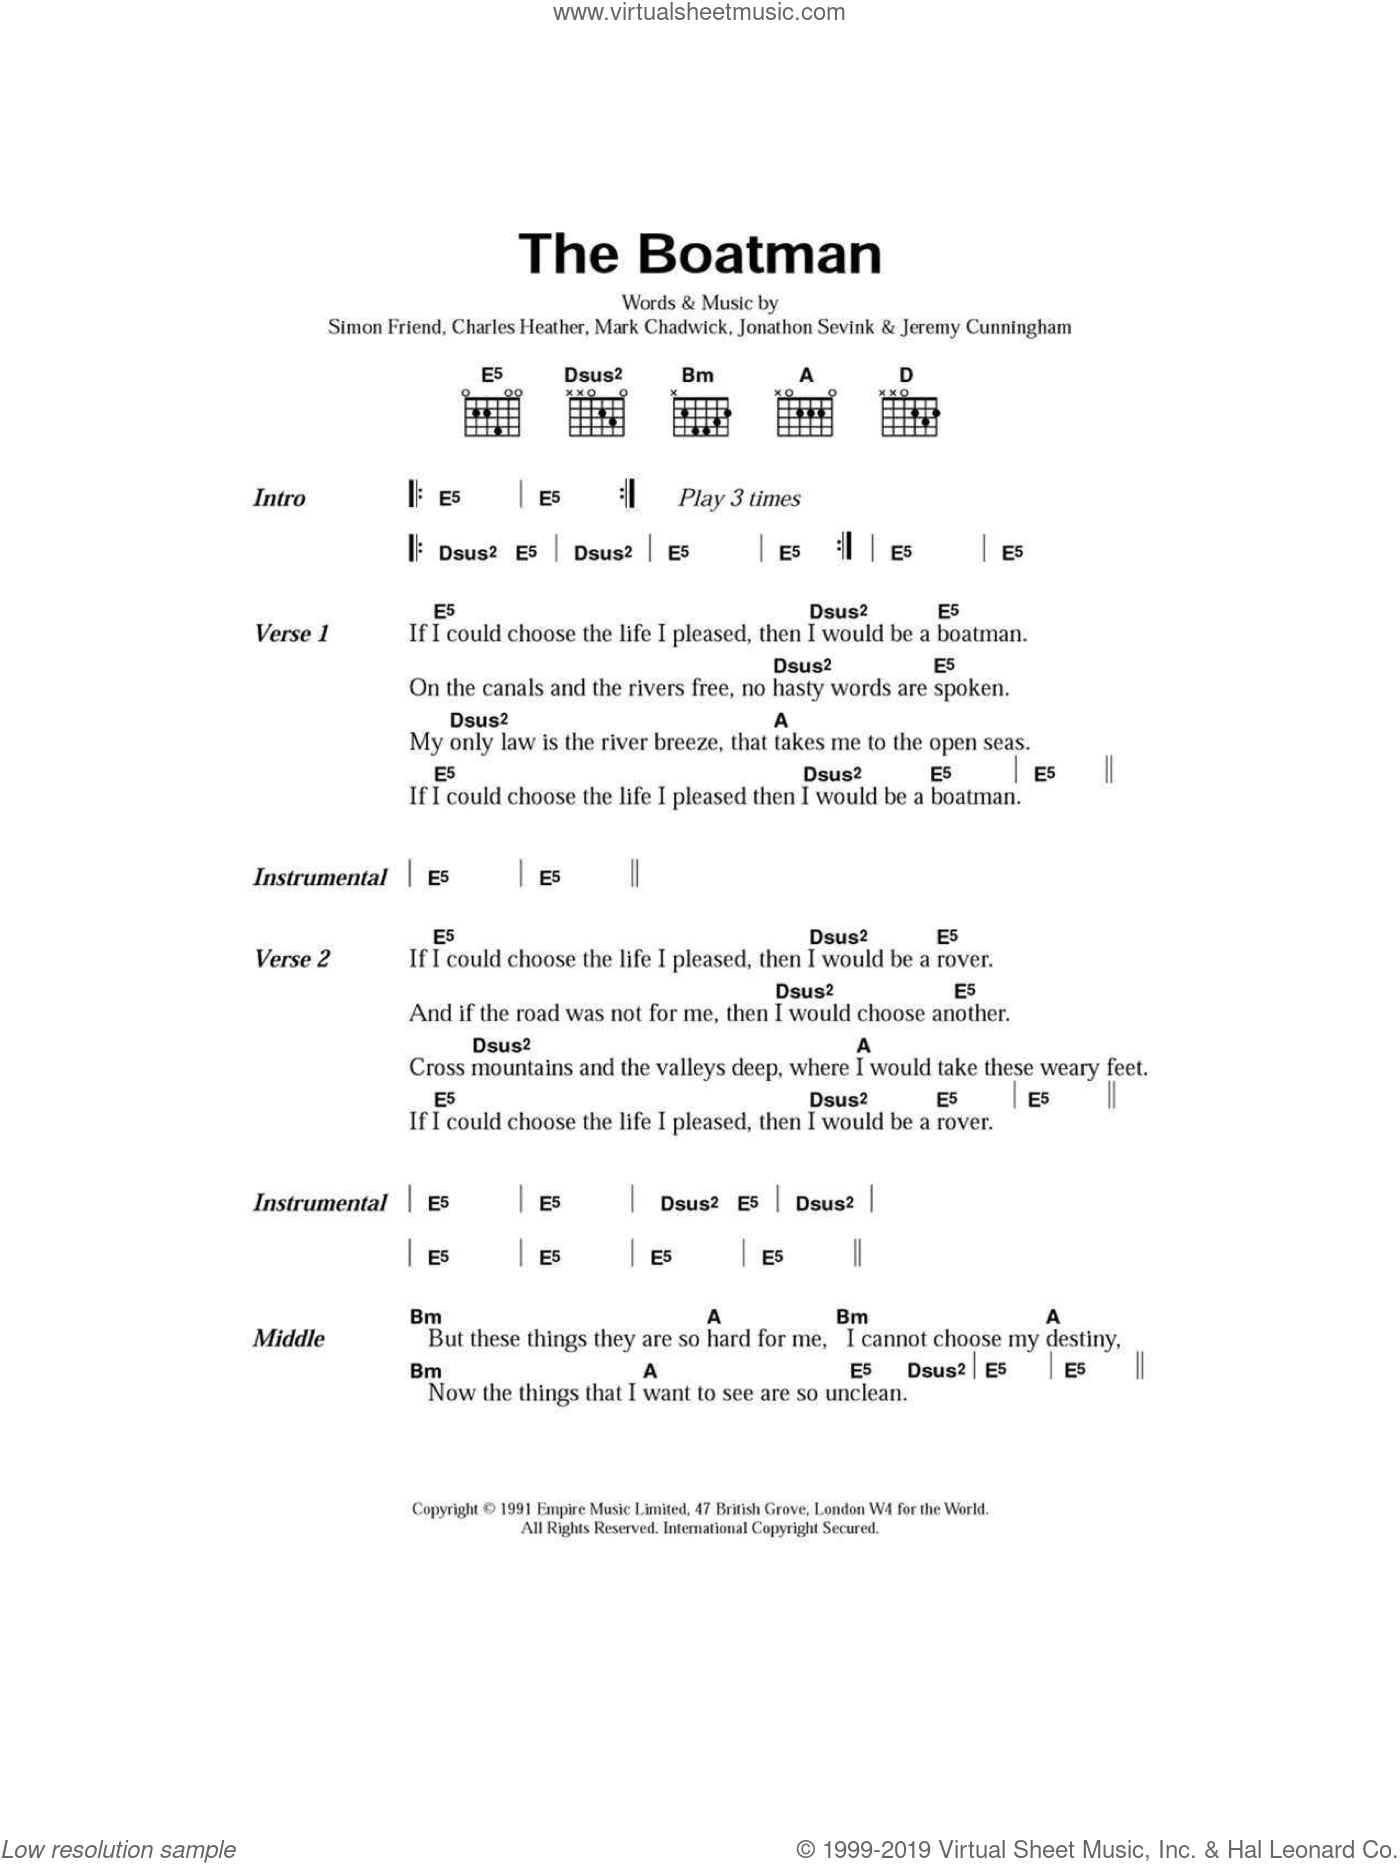 The Boatman sheet music for guitar (chords) by Simon Friend